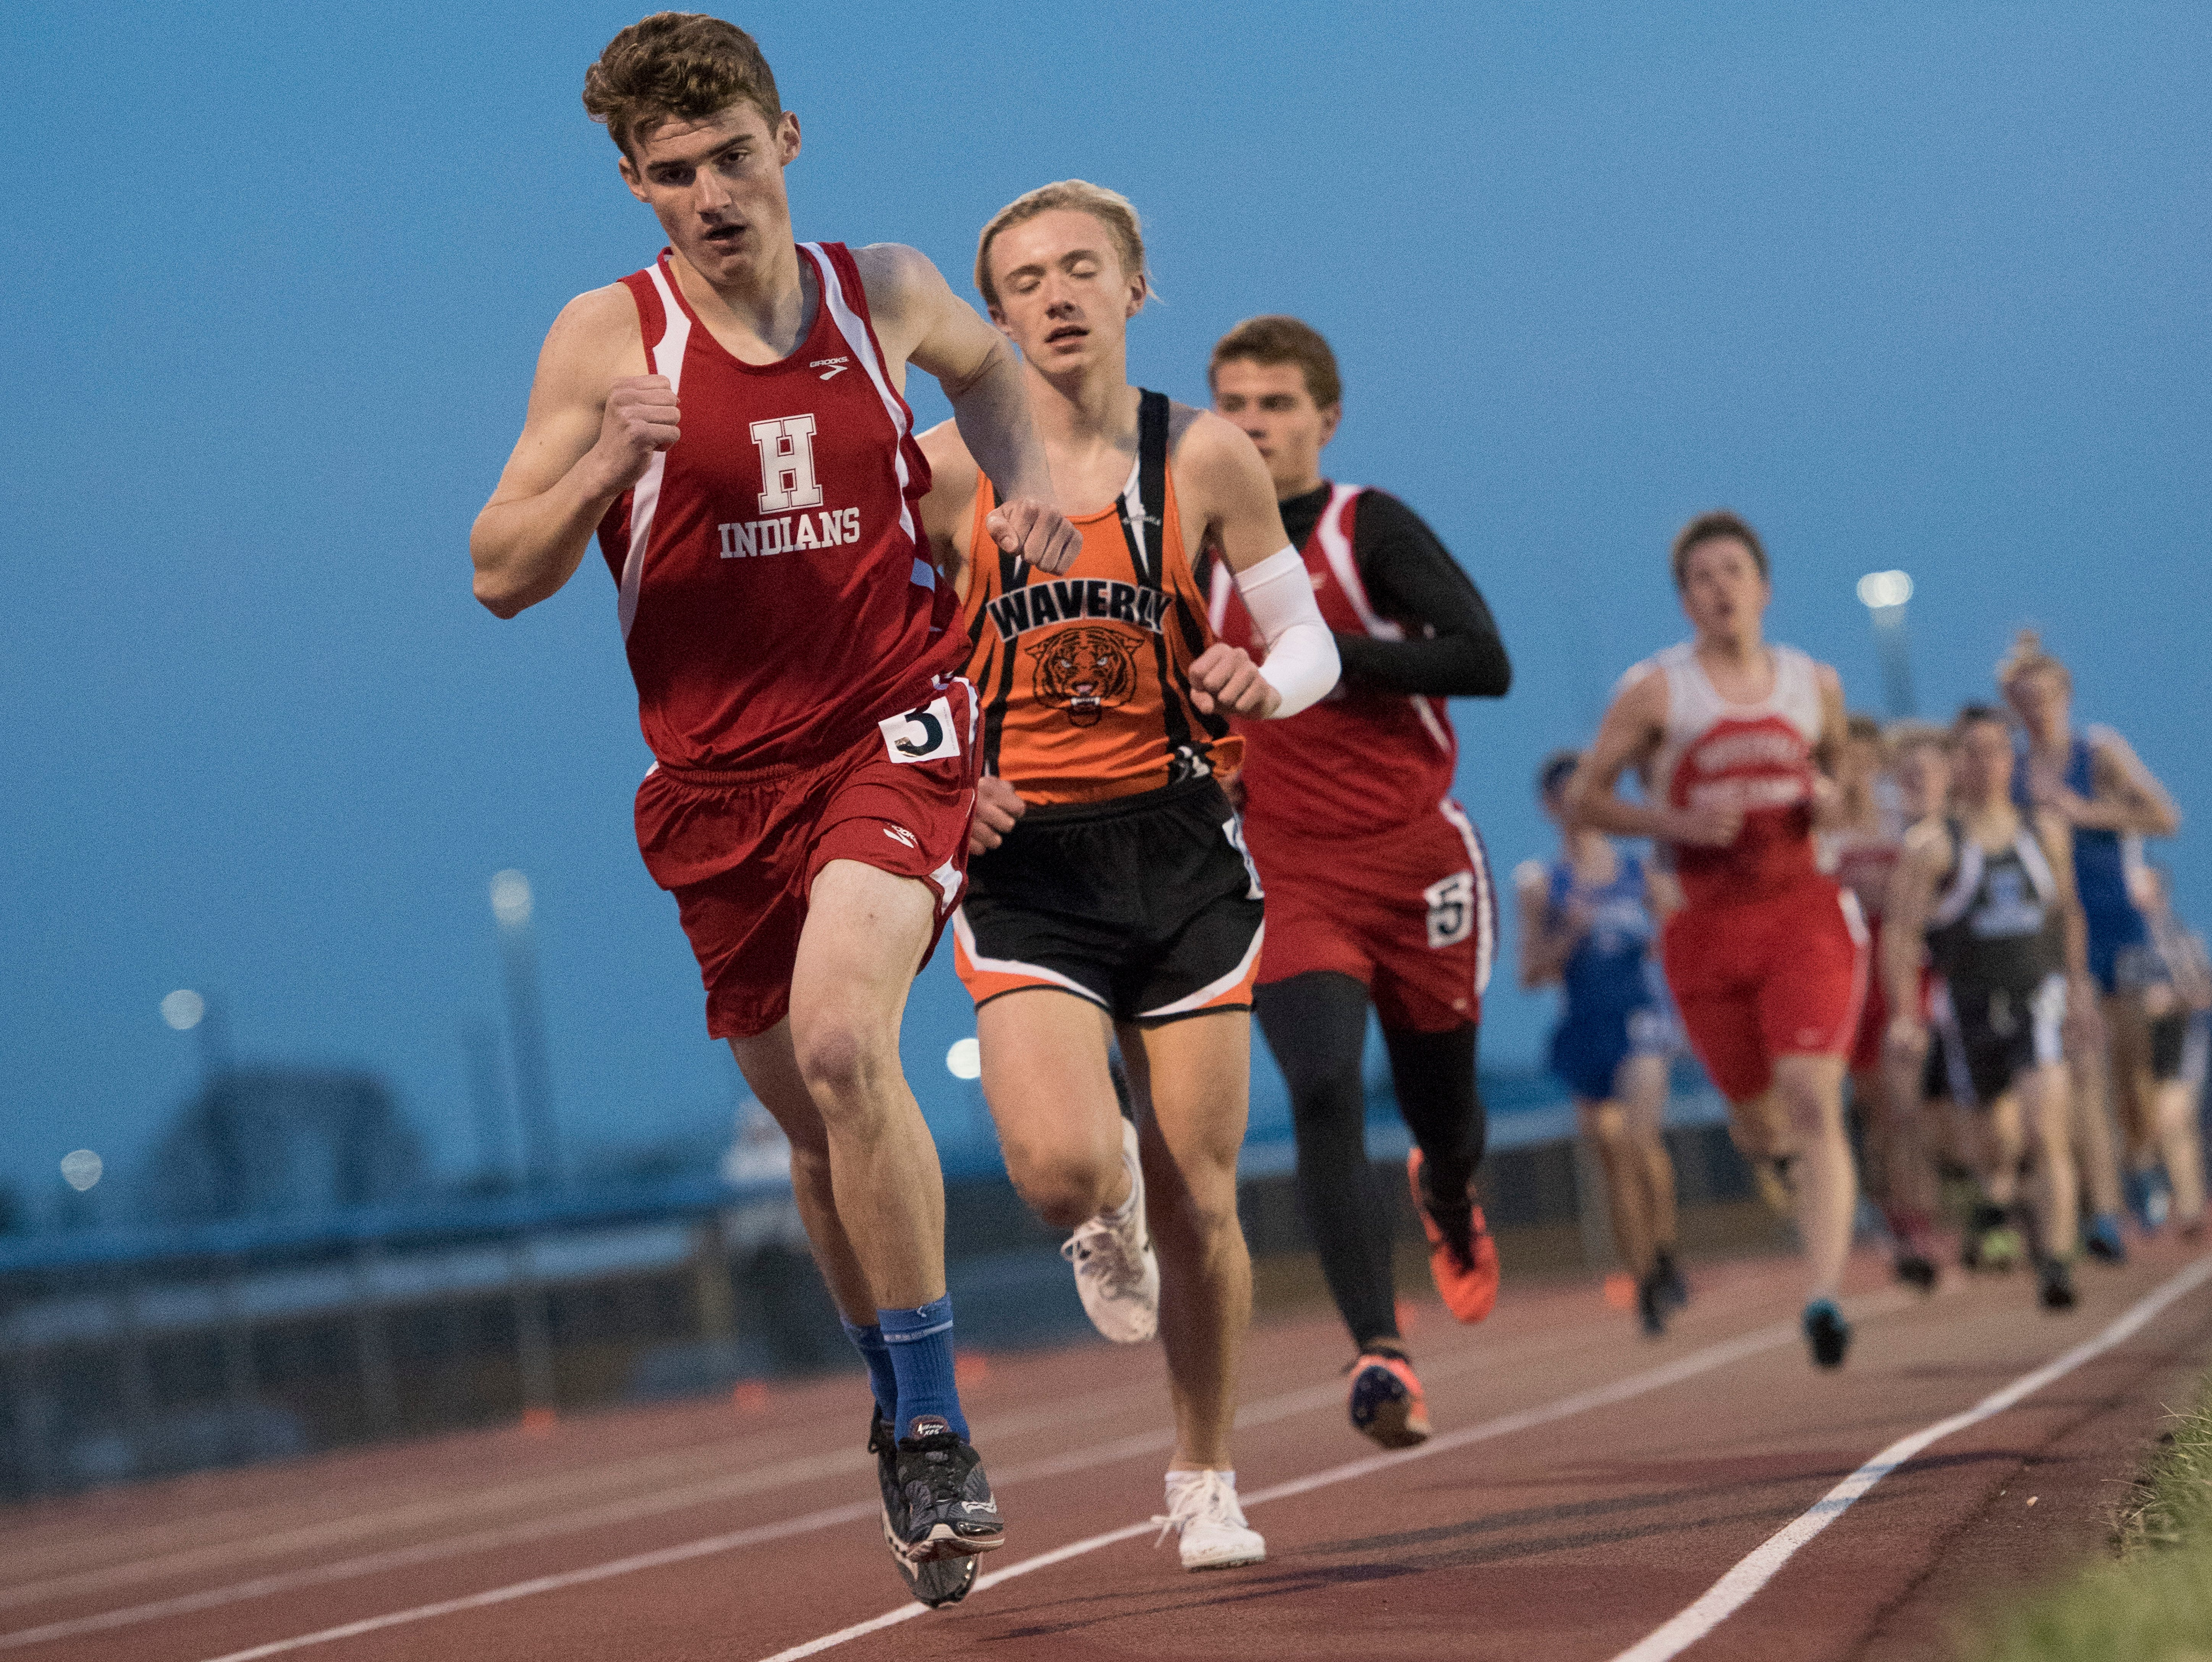 Several local schools competed at the RL Davisson Invite at Southeastern High School Thursday night with Chillicothe's girls placing fifth and Waverly's boys placing second overall.